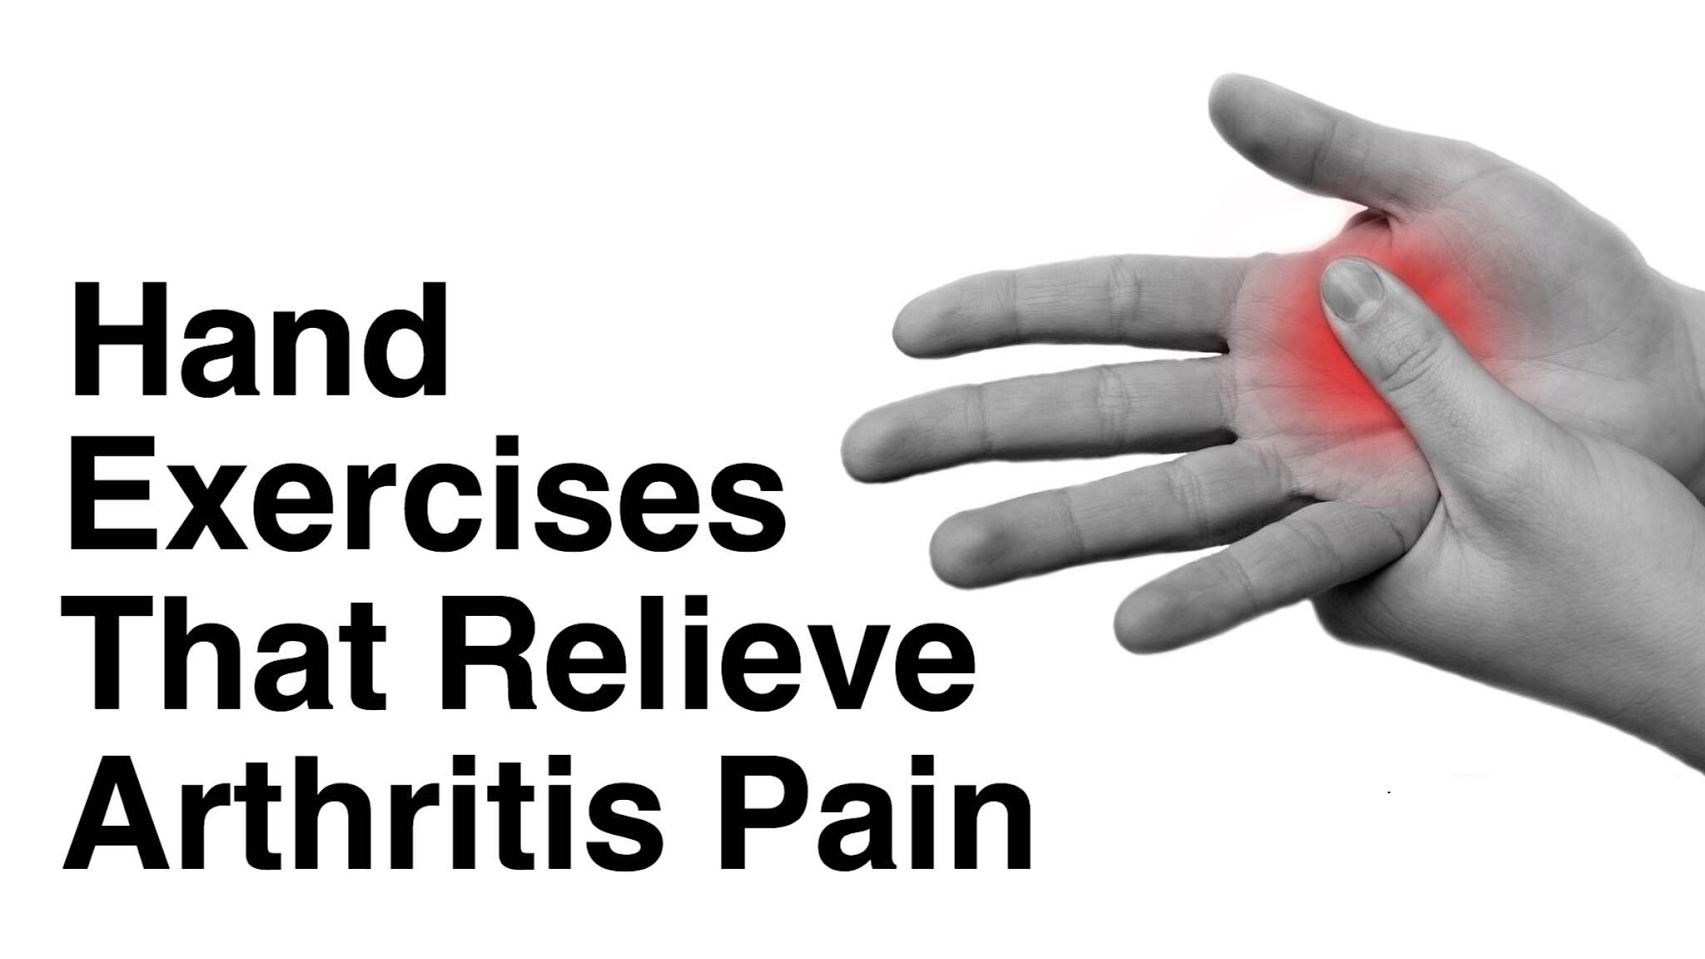 Hand exercise for arthritic pain